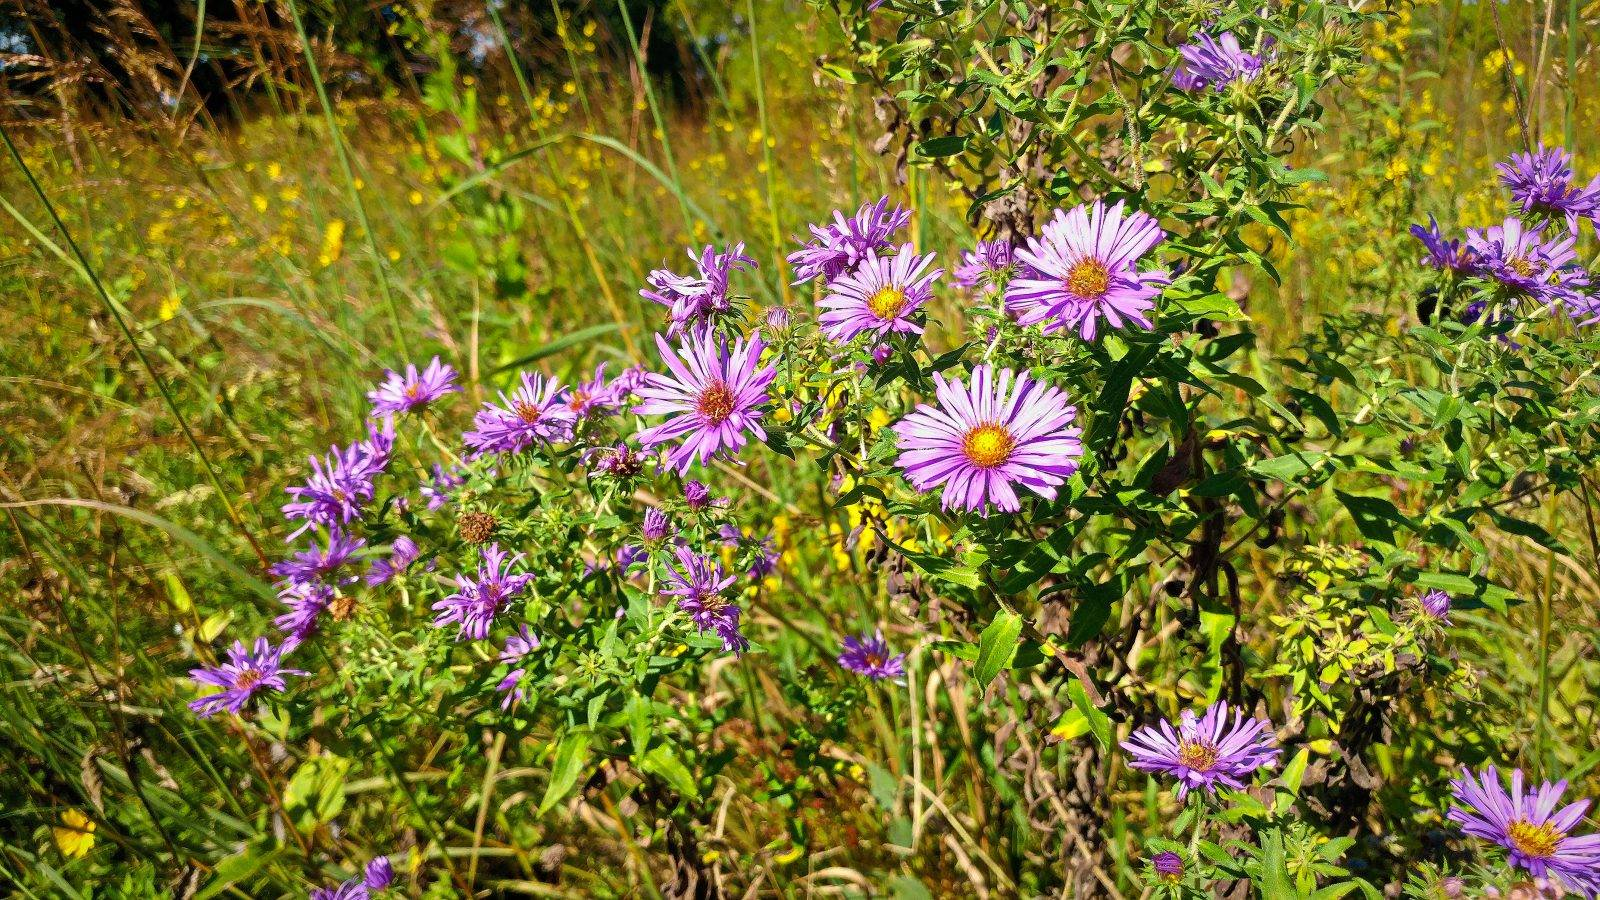 Wildflowers at Casper Bluff Land & Water Reserve